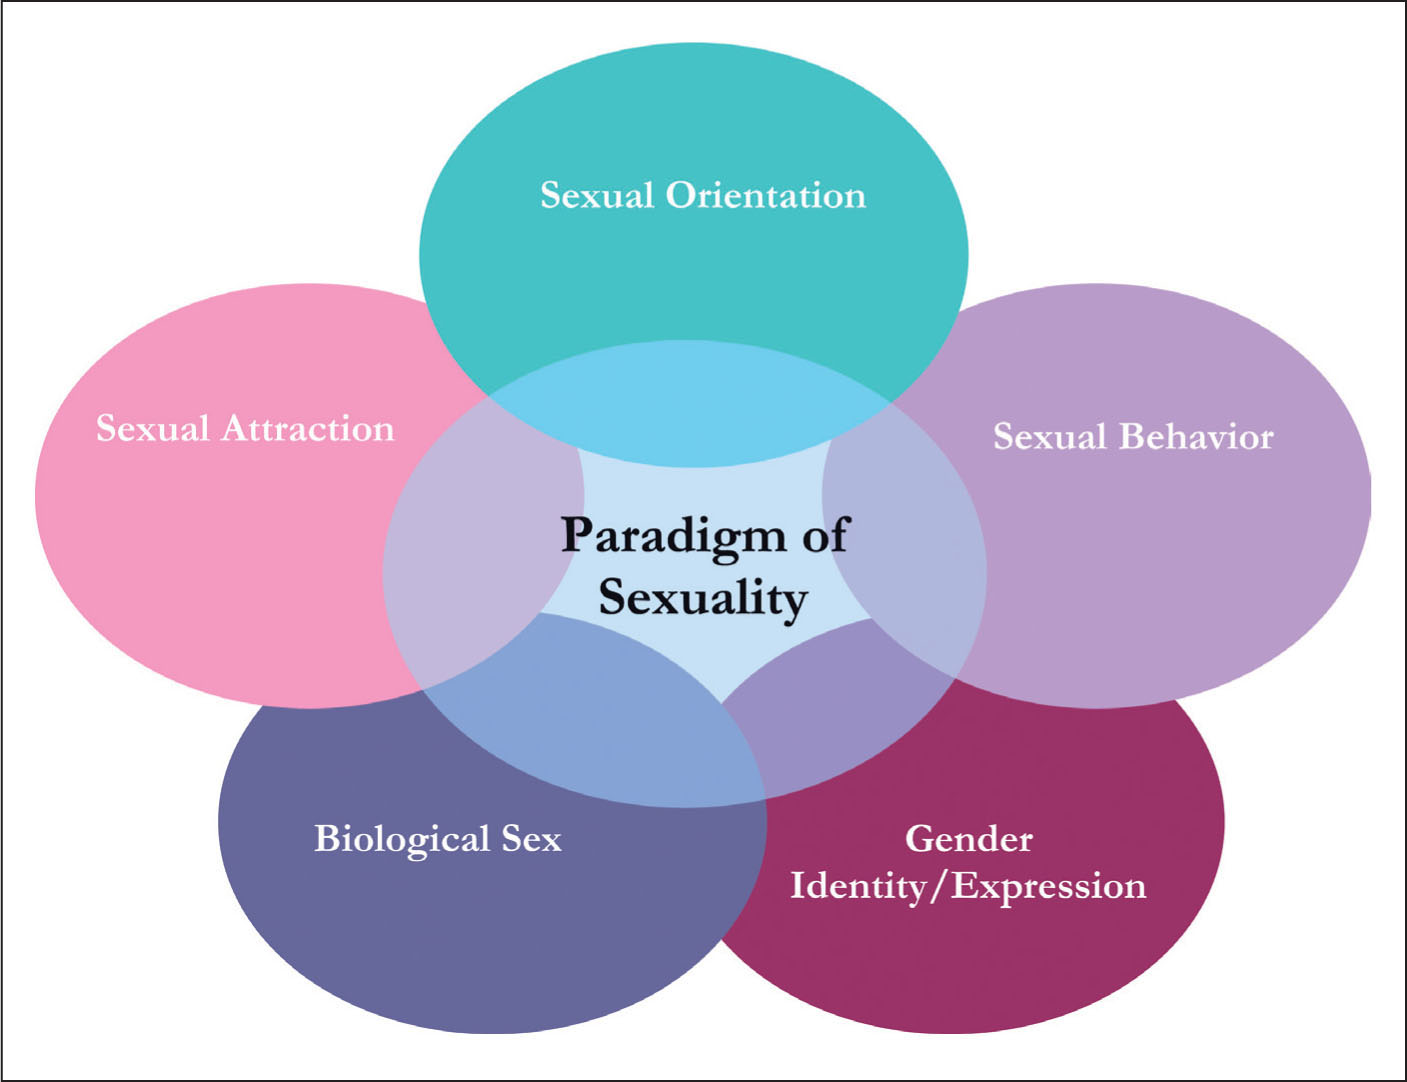 Paradigm of sexuality.Image courtesy of Physicians for Reproductive Choice and Health.Reprinted with permission.